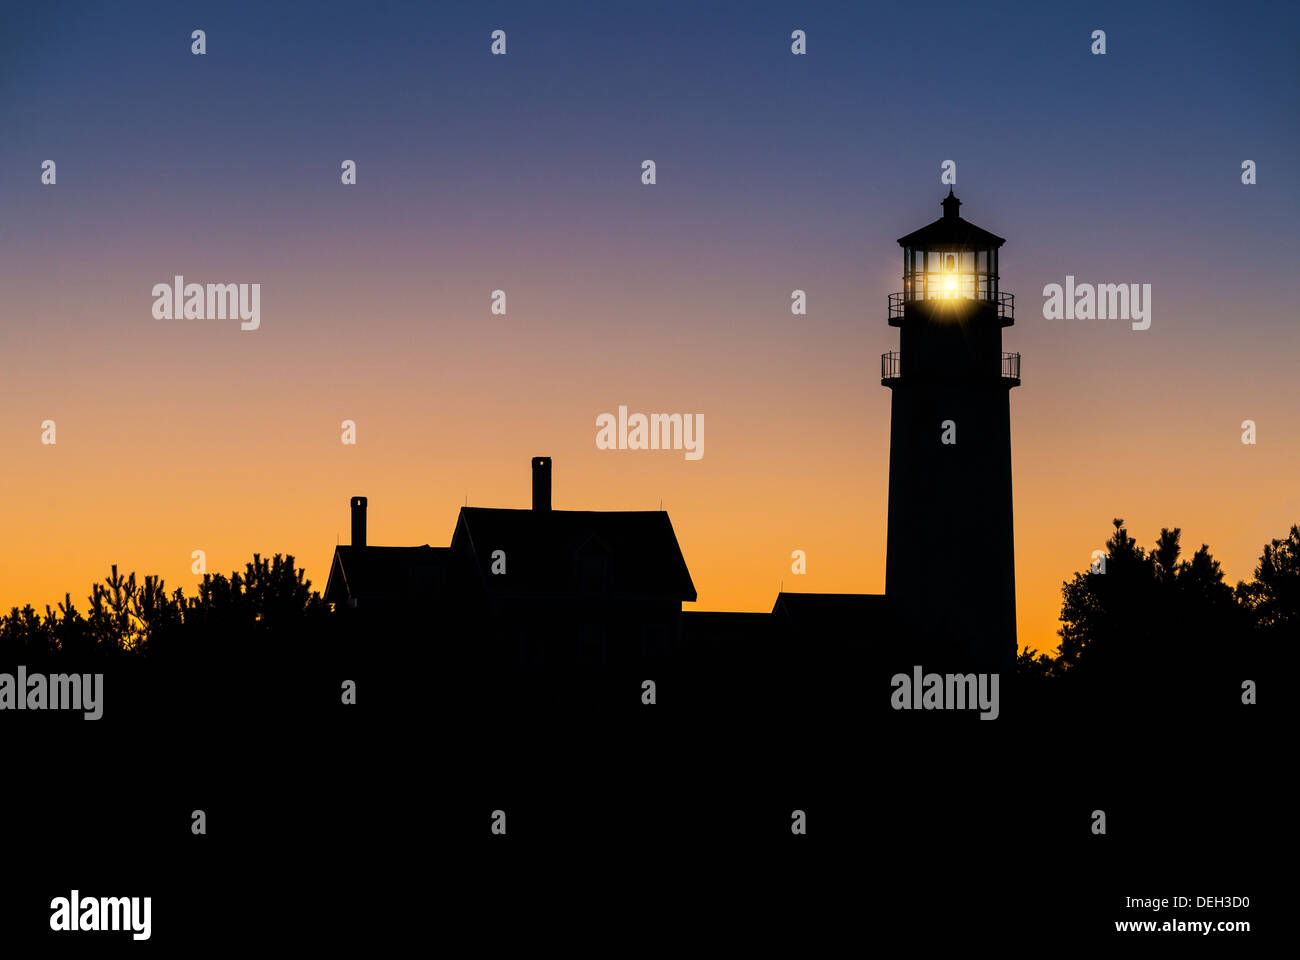 Sillhouette of a lighthouse at dawn, Highland Light, Truro, Cape Cod, Massachusetts, USA - Stock Image